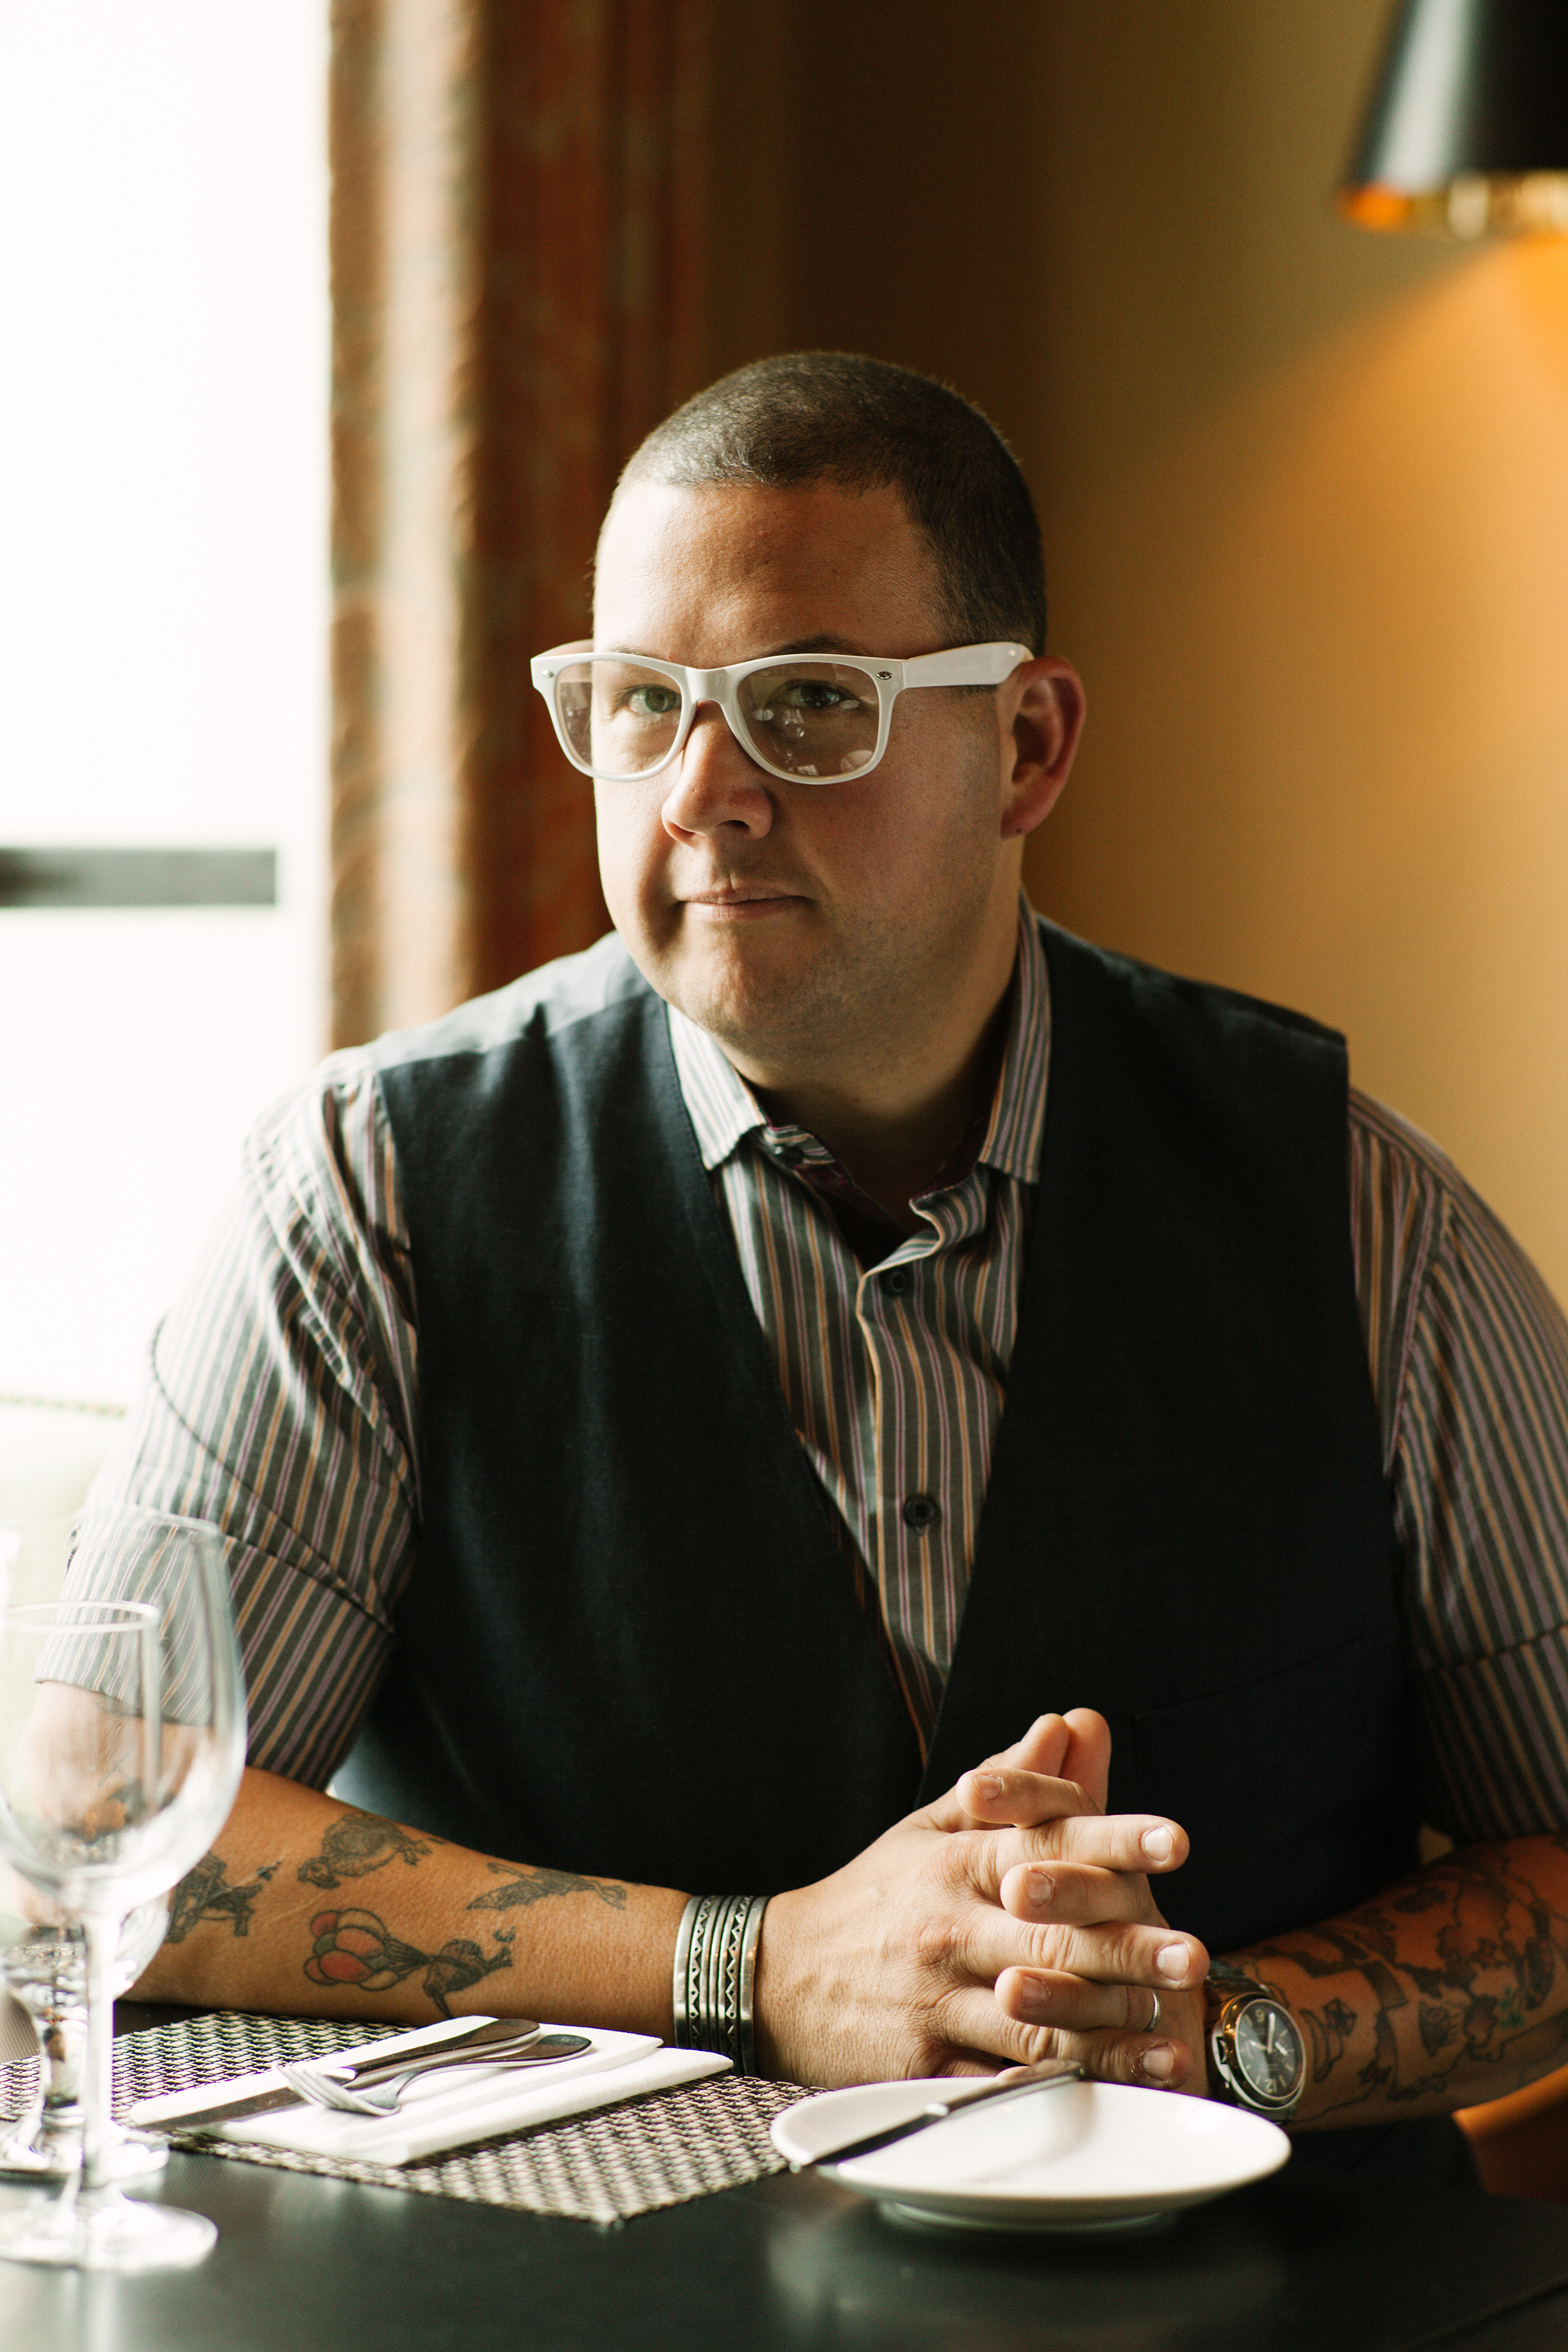 graham-elliot-5636-sized.jpg